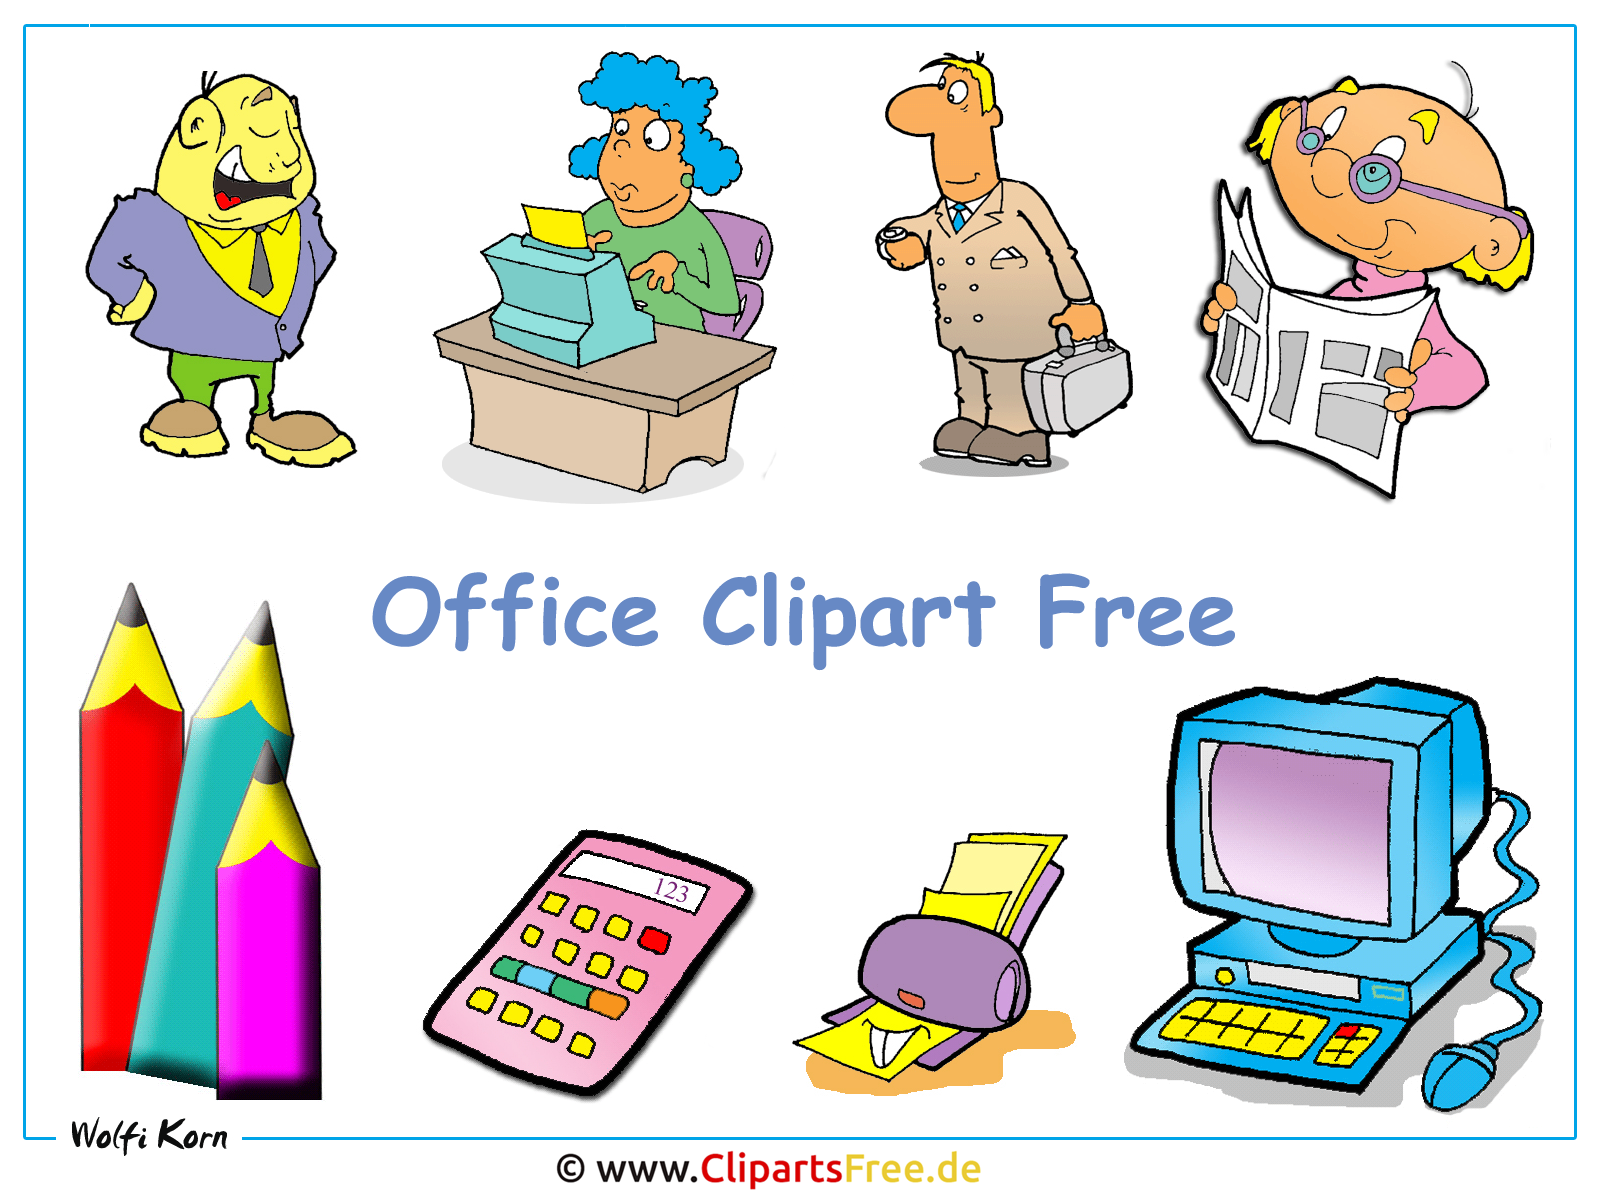 Clipart Office Gallery